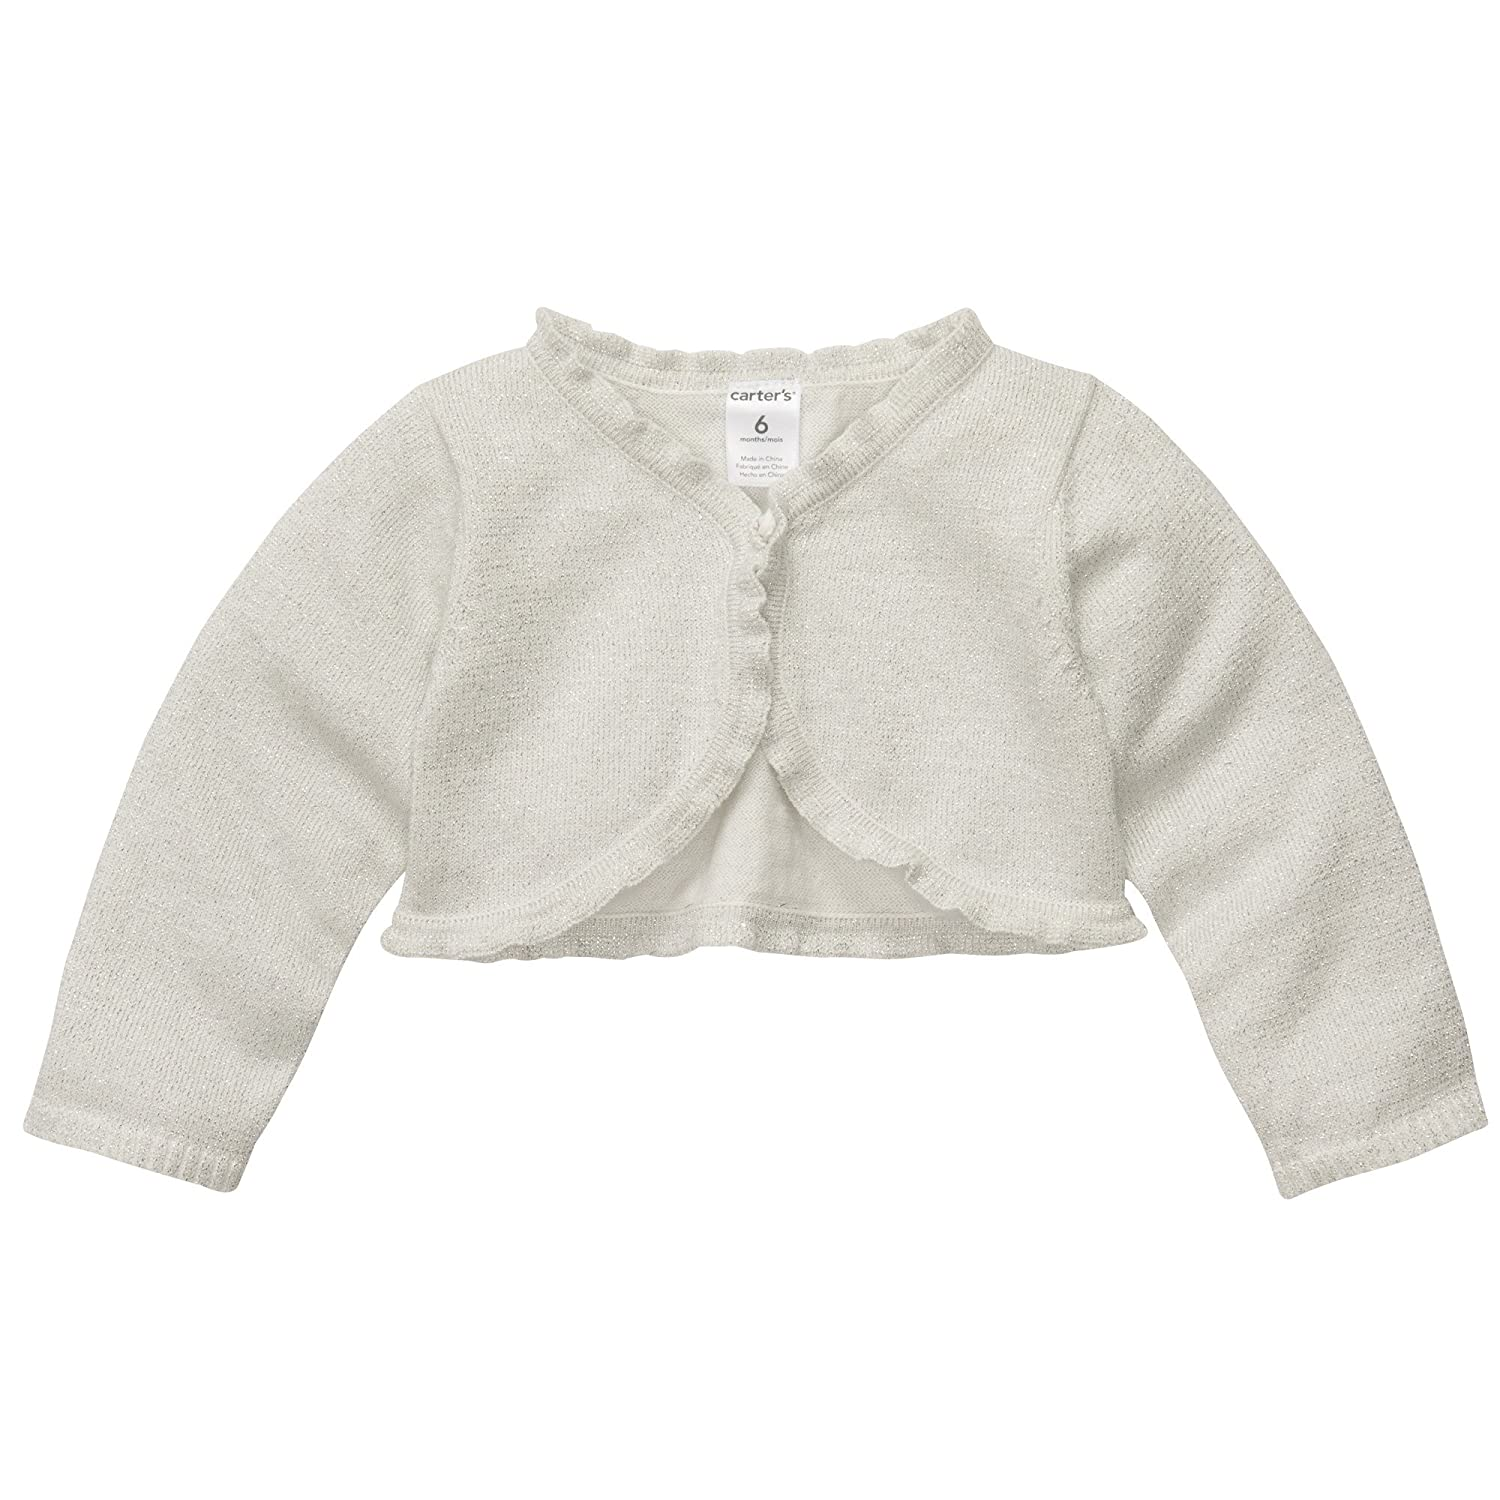 Carters Shimmer Cardigan Size 9 Months